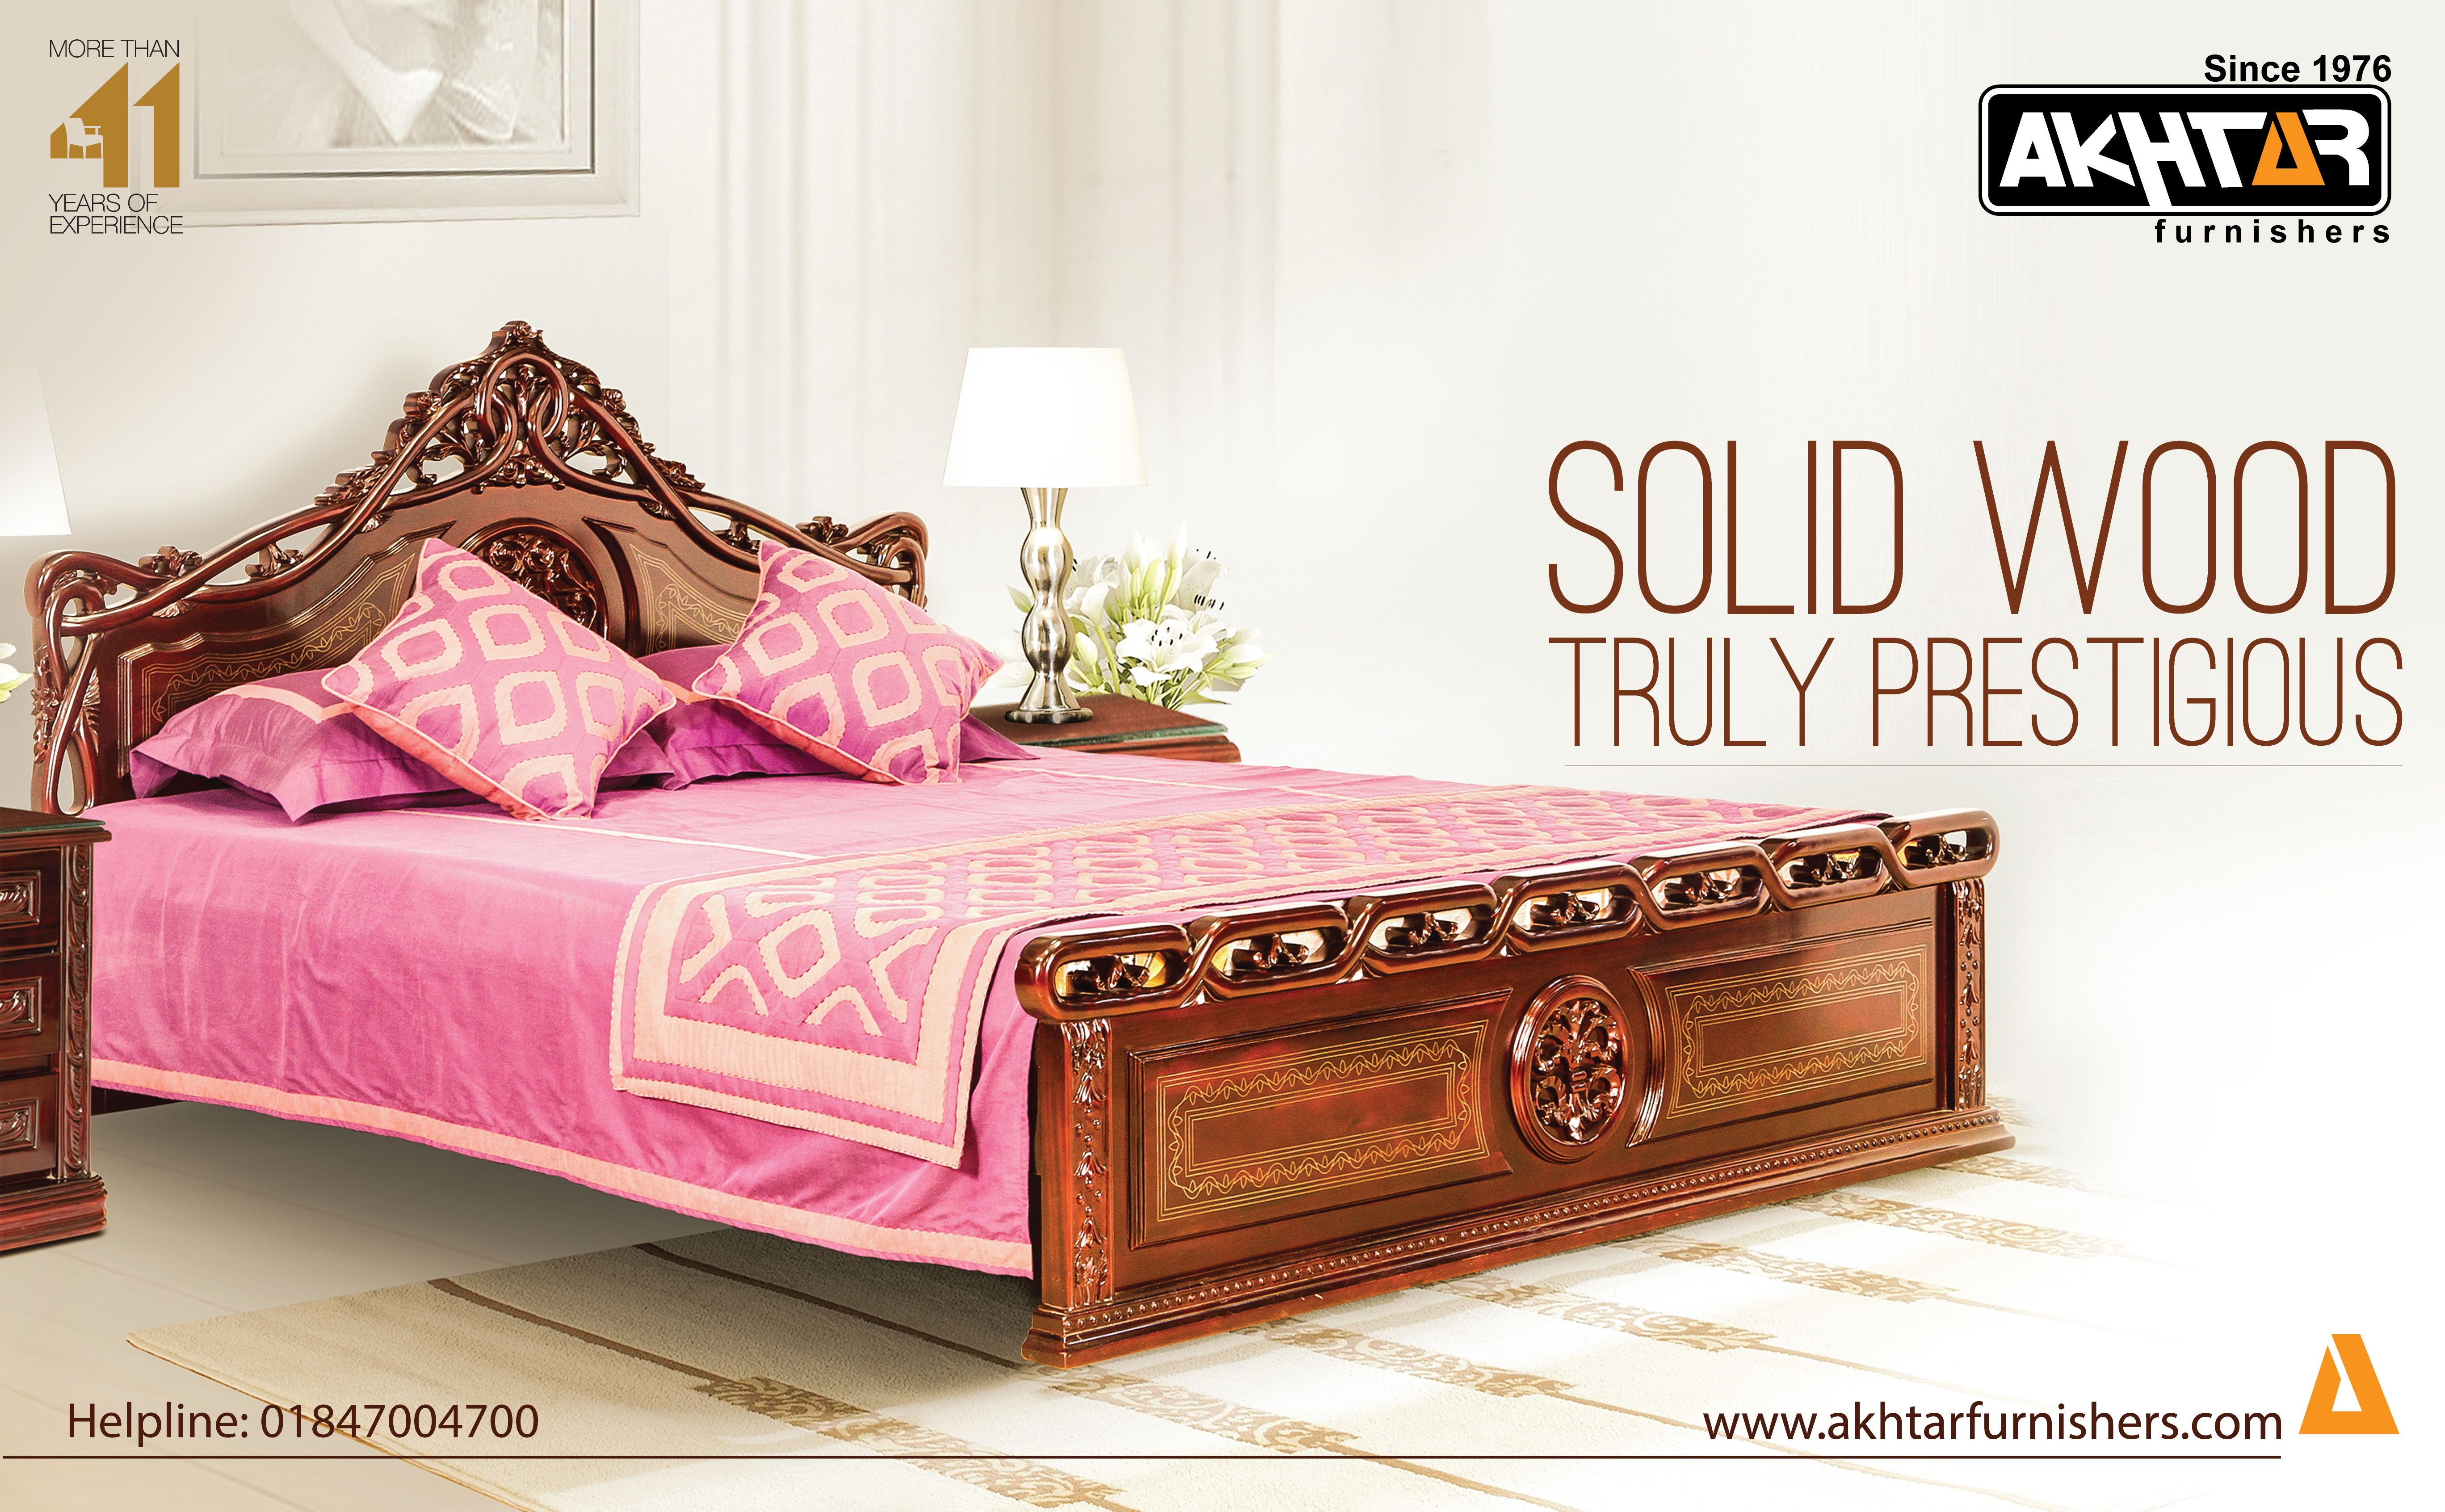 Pin By Akhtar Group On Solid Wood Truly Prestigious Solid Wood Home Decor Furniture